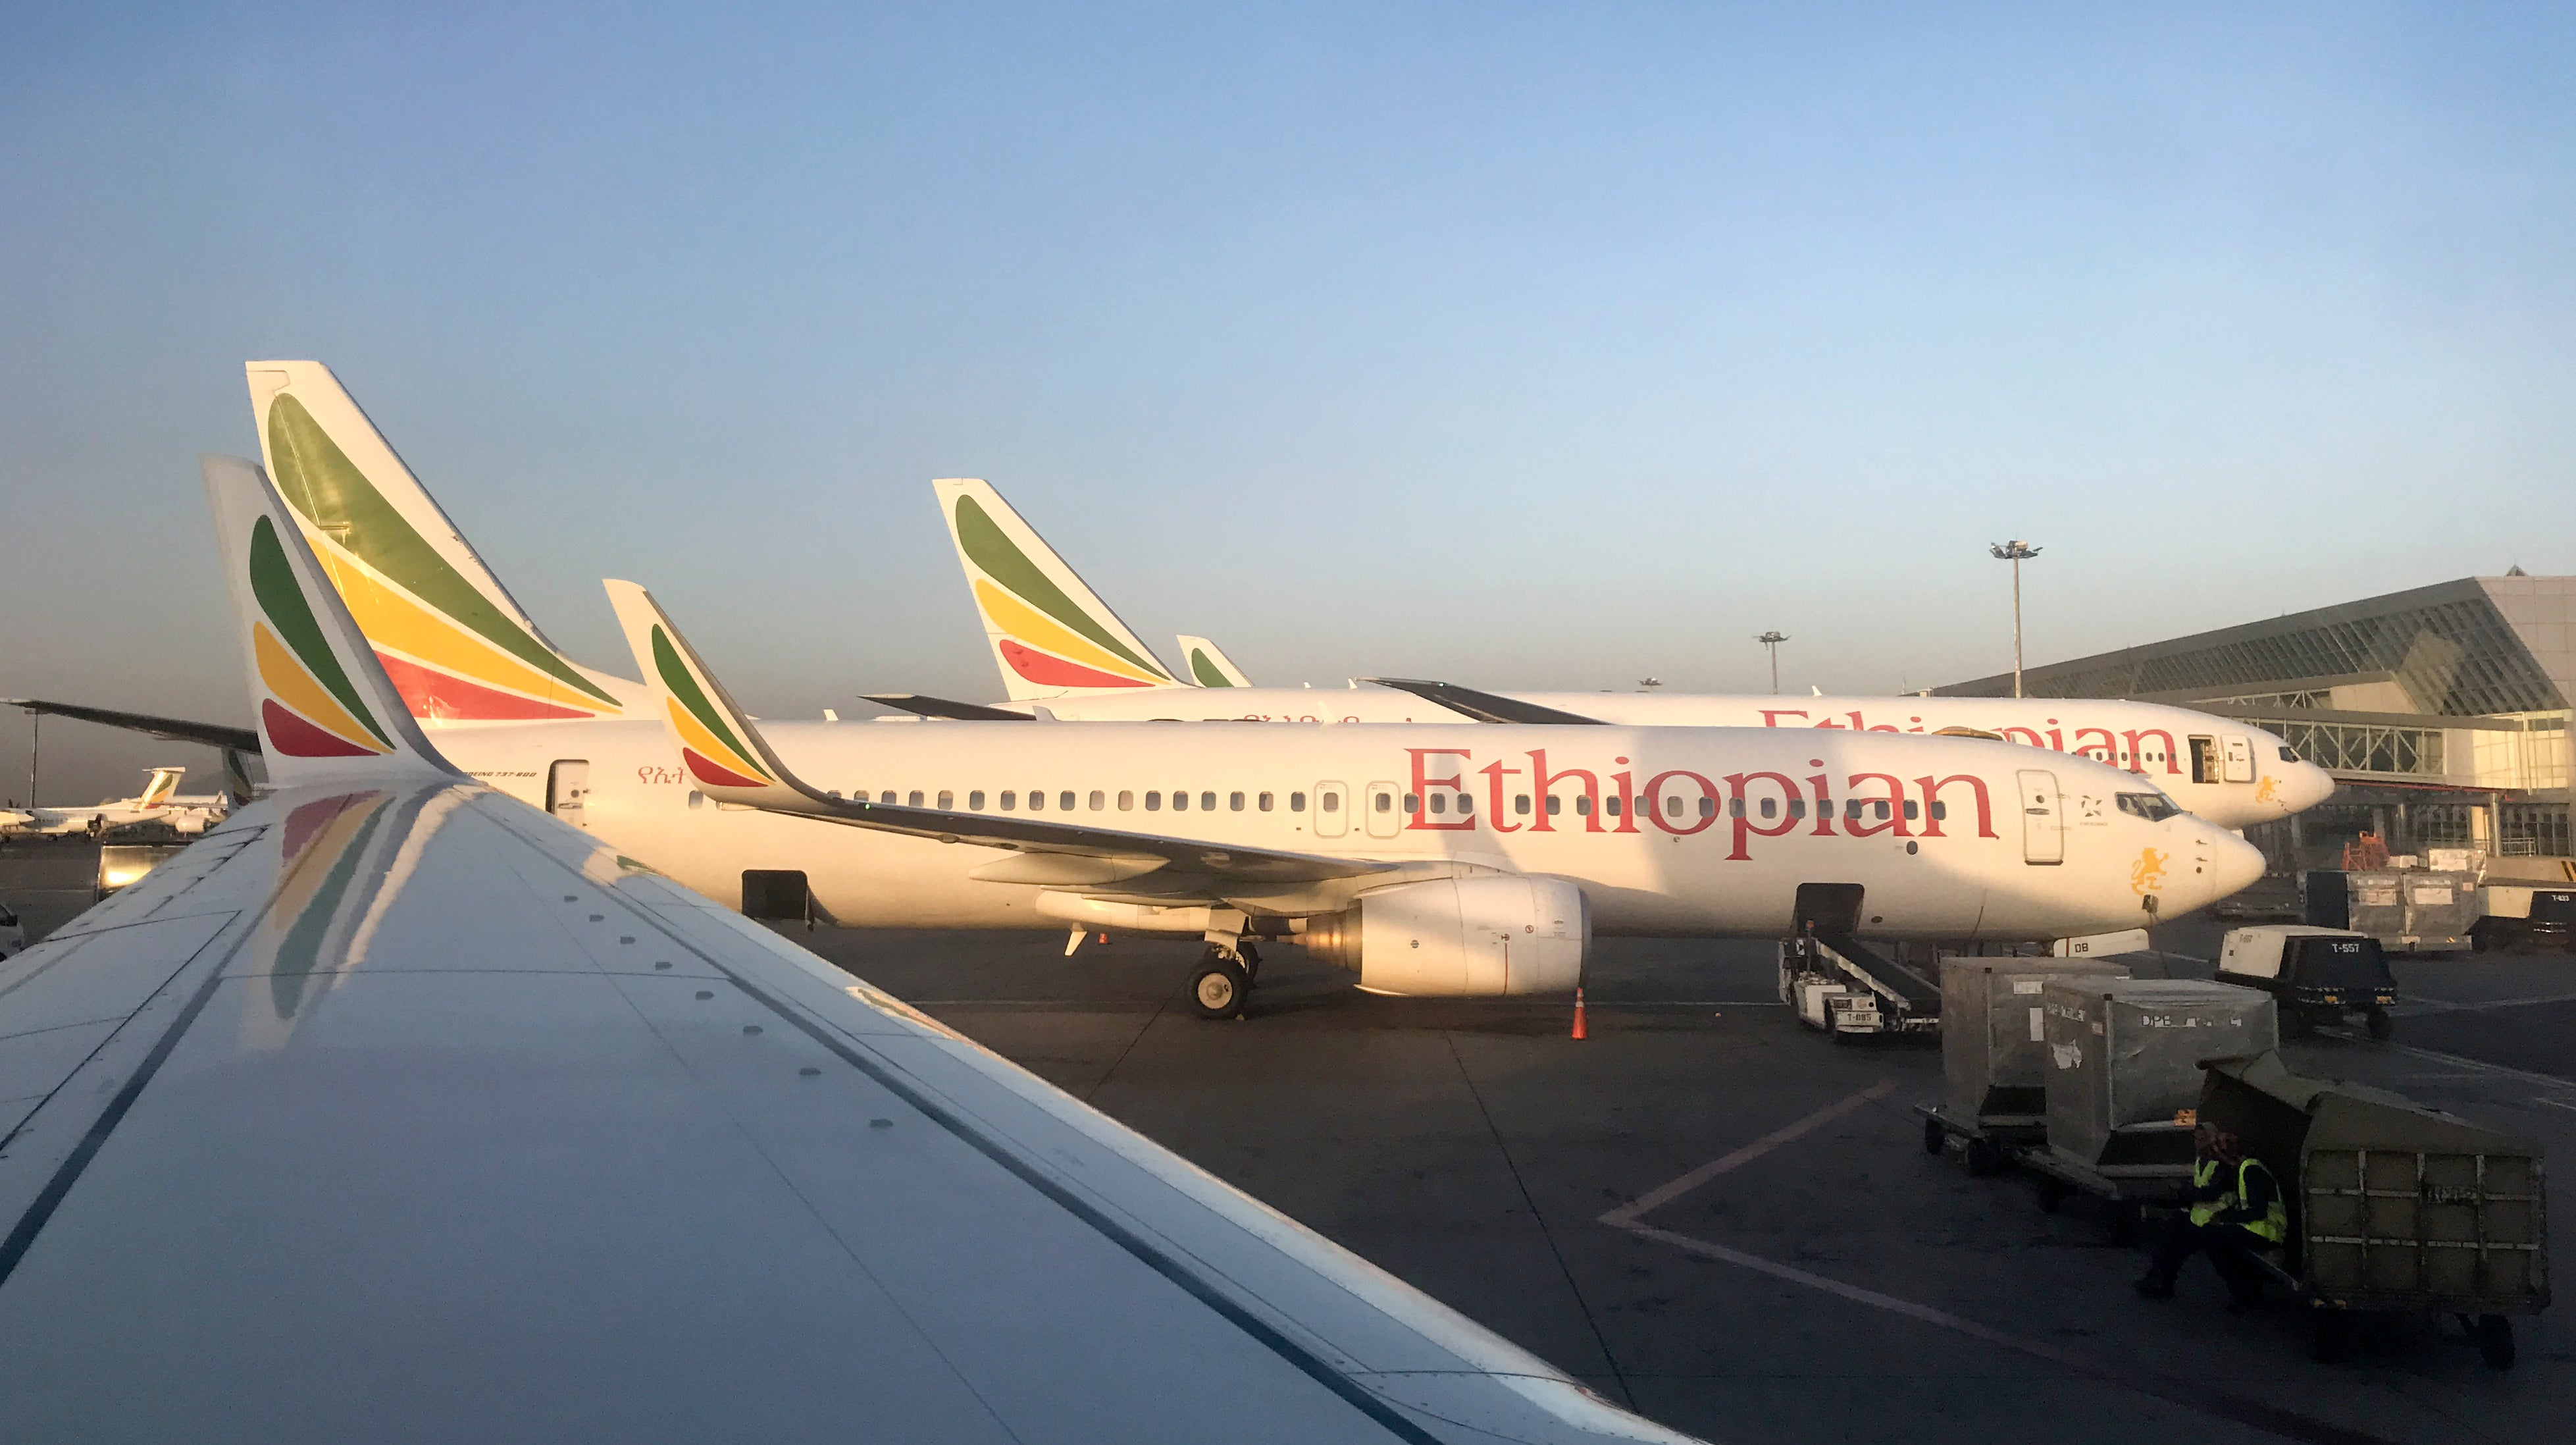 157 Killed In Ethiopian Airlines Boeing 737 Crash